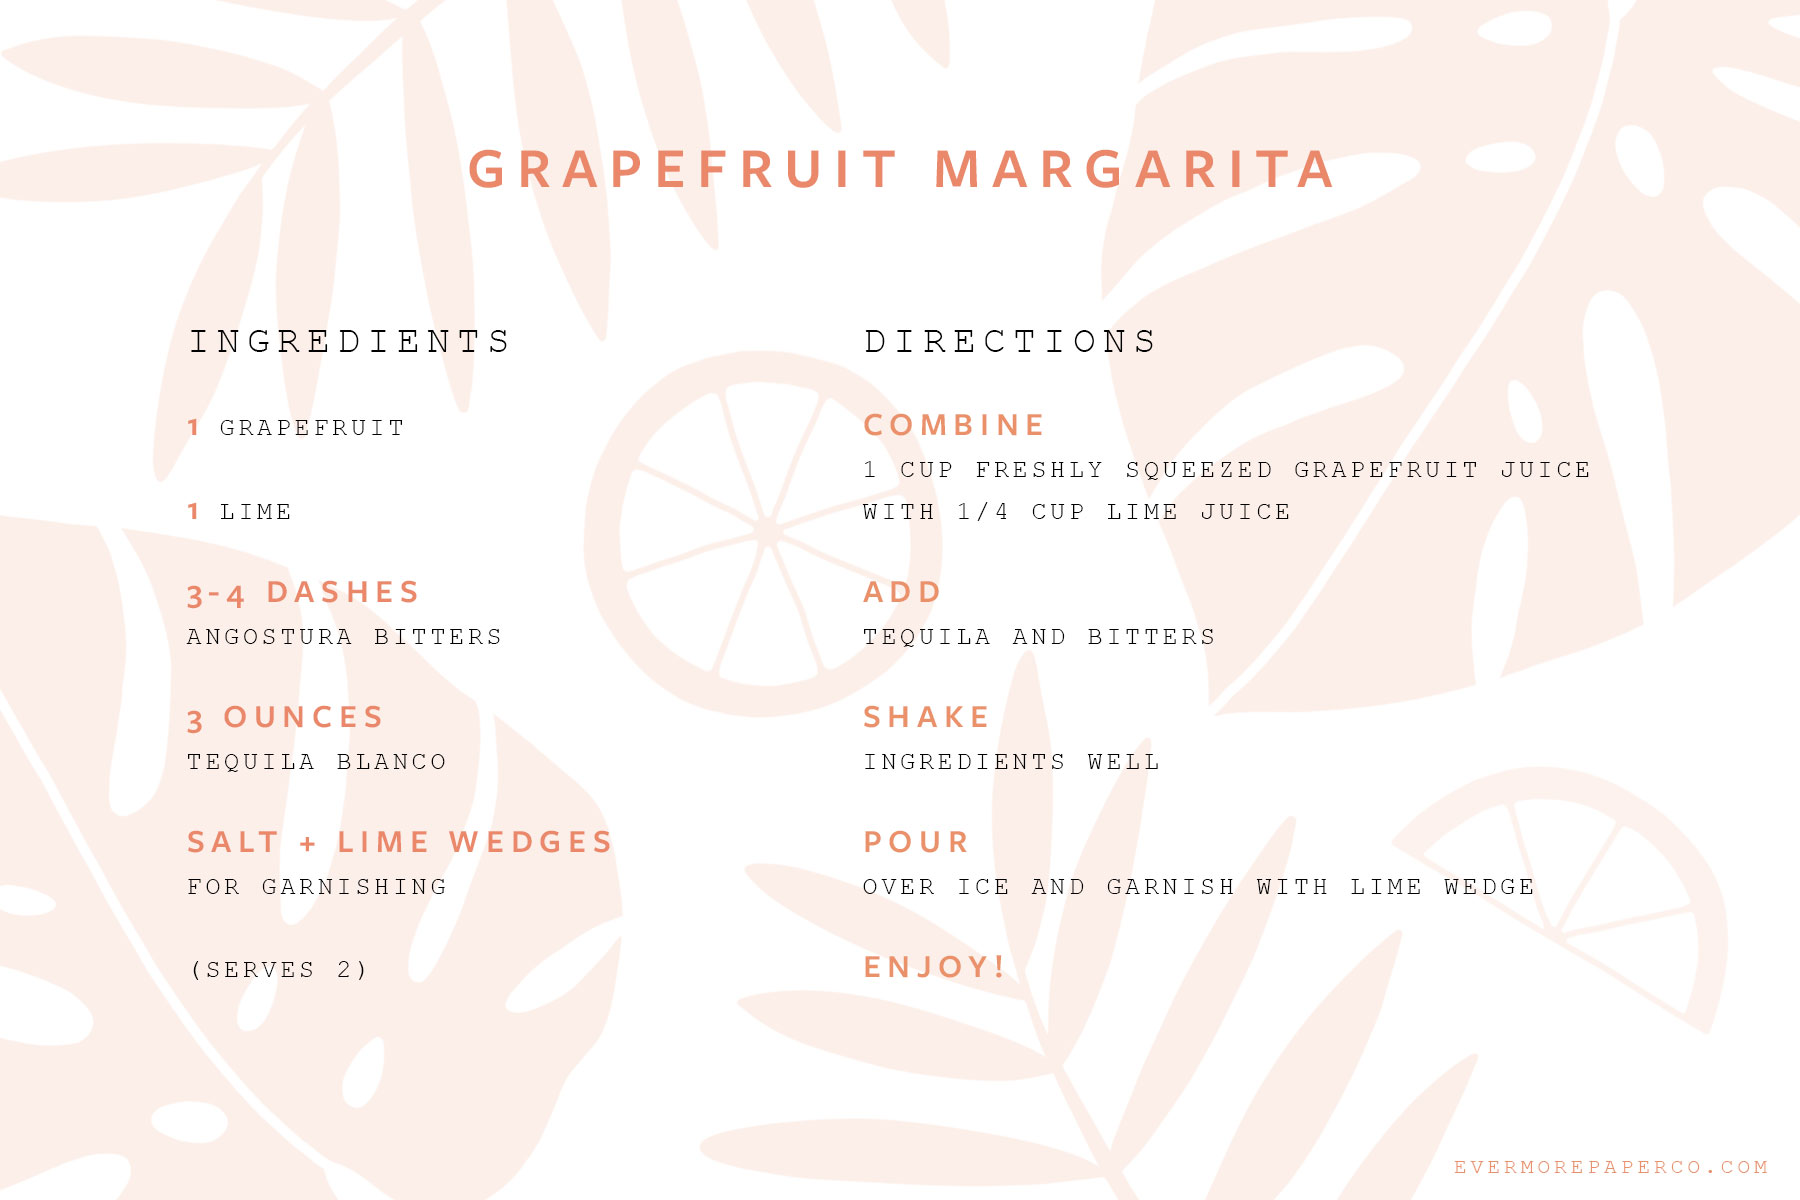 Grapefruit margarita recipe card download from Evermore Paper Co.